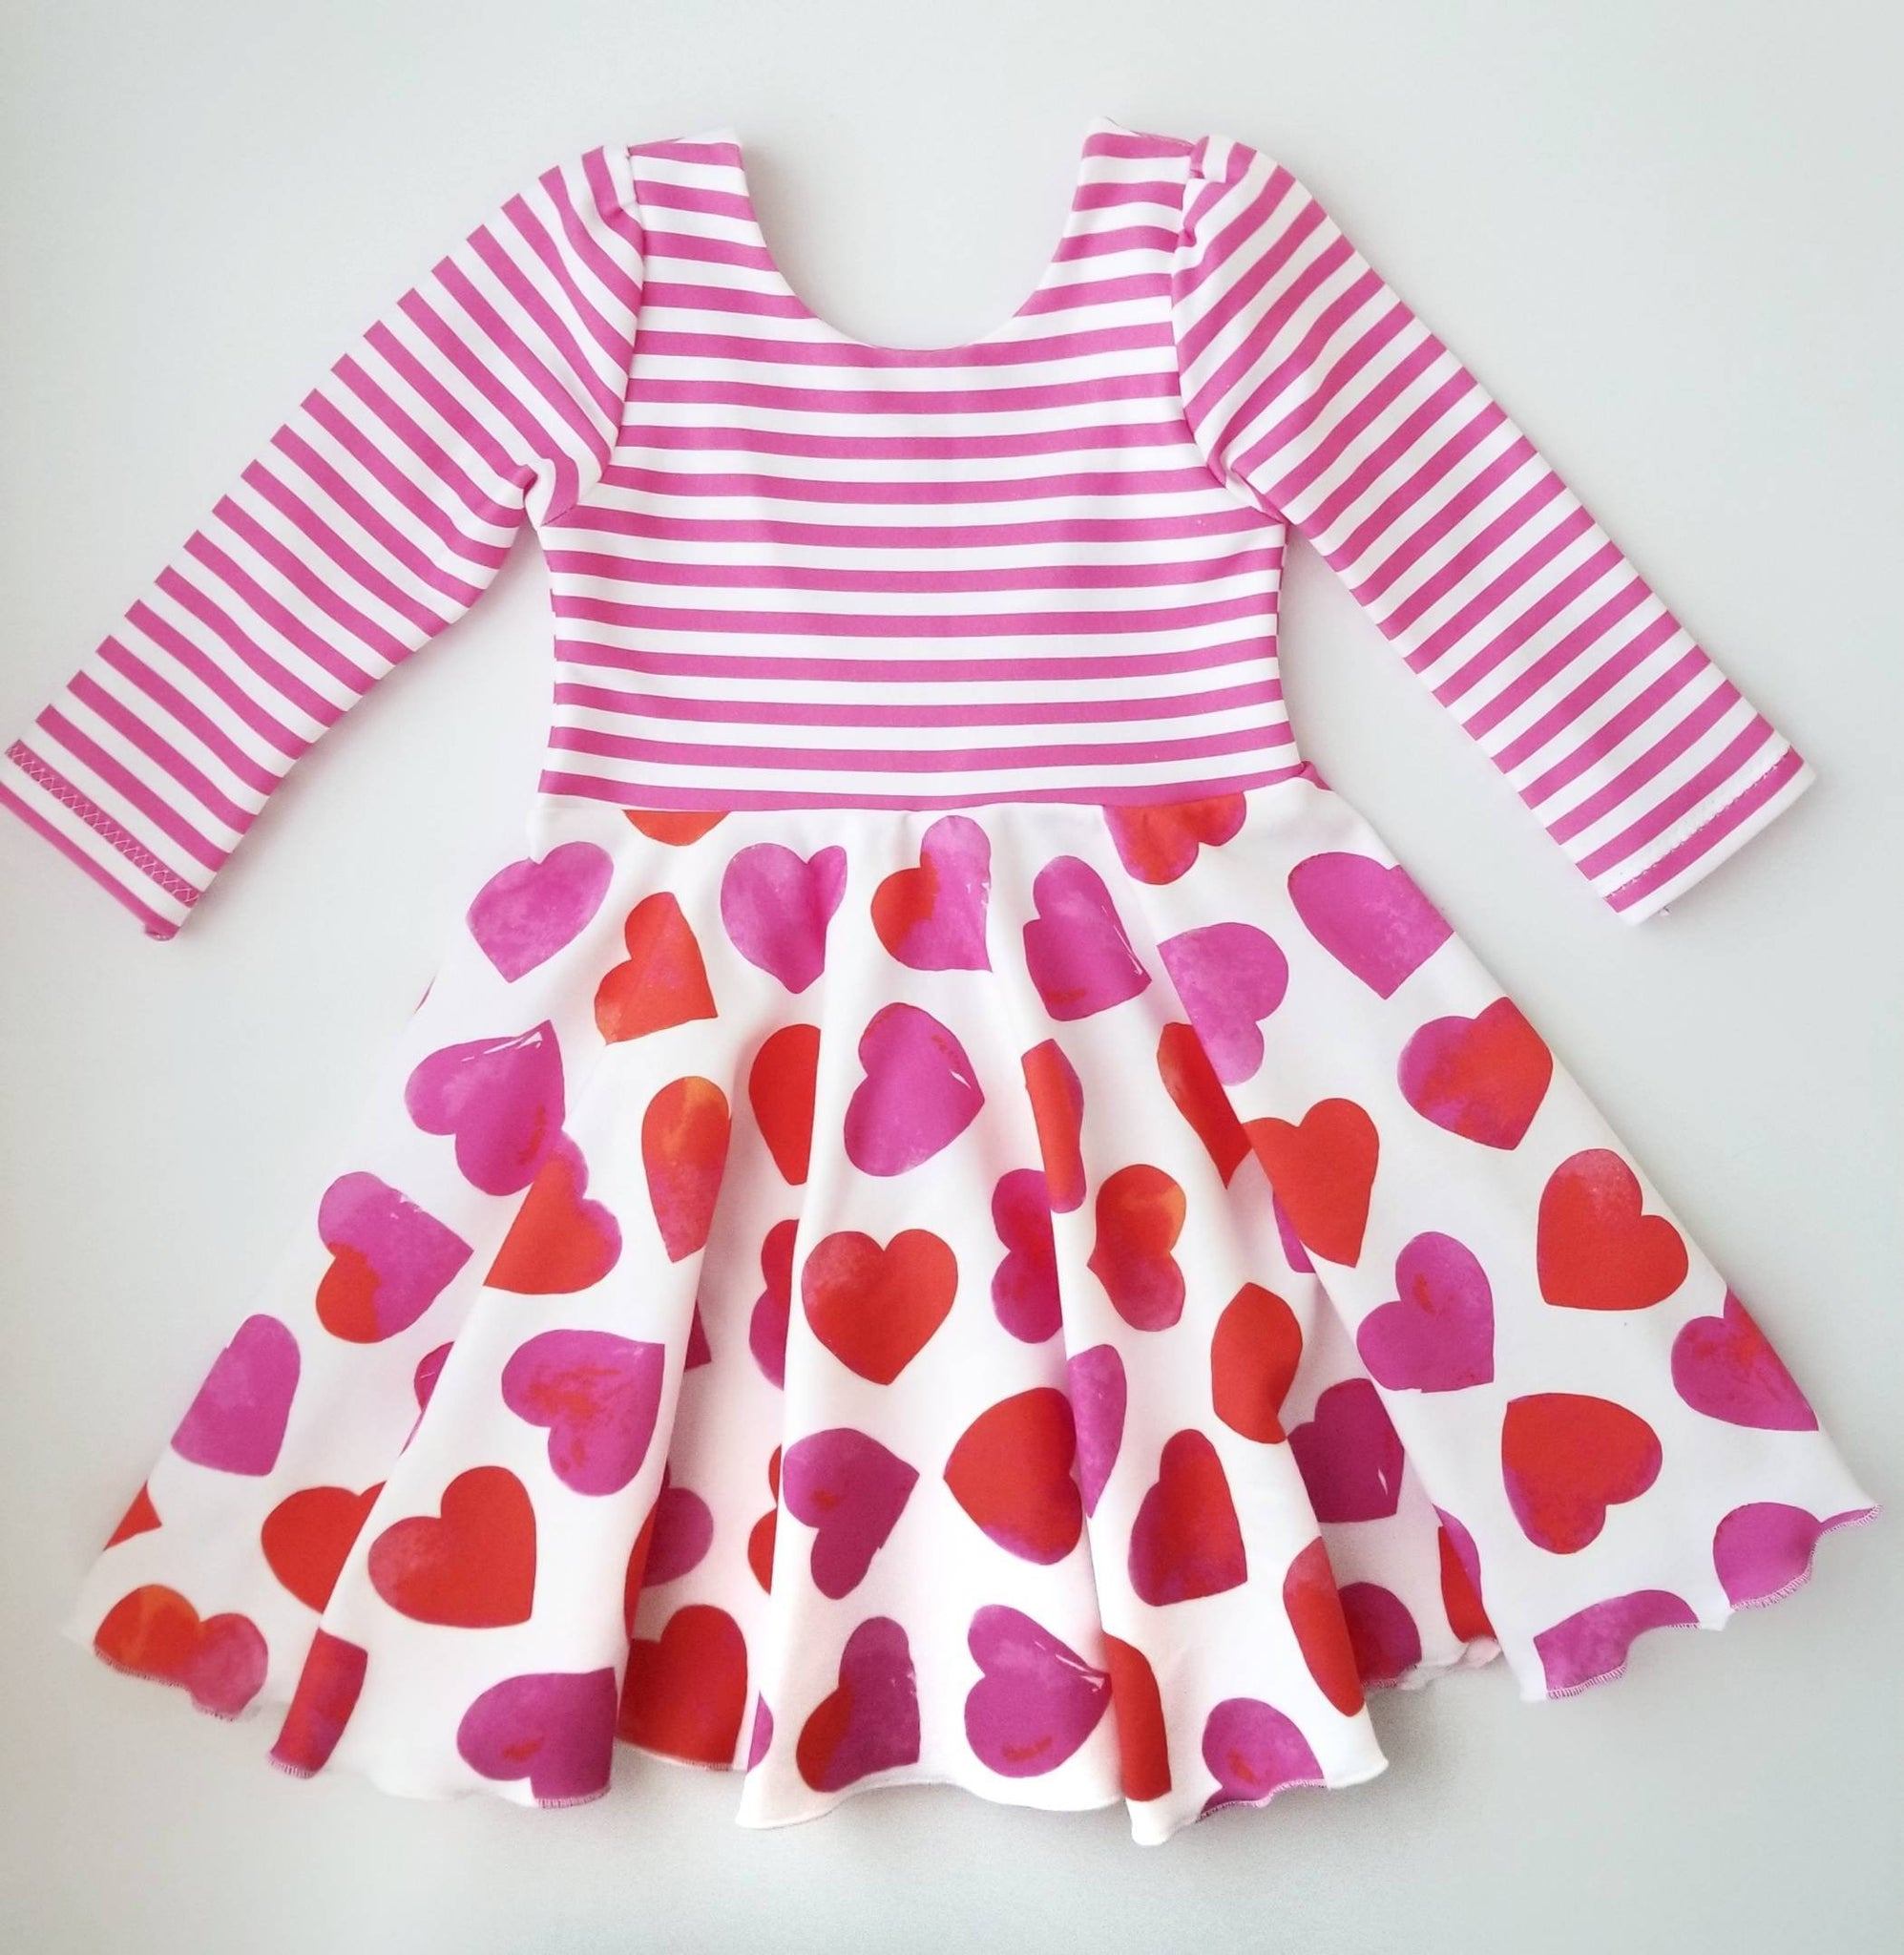 Valentine's Heart Print Twirl Dress Handmade Red & White